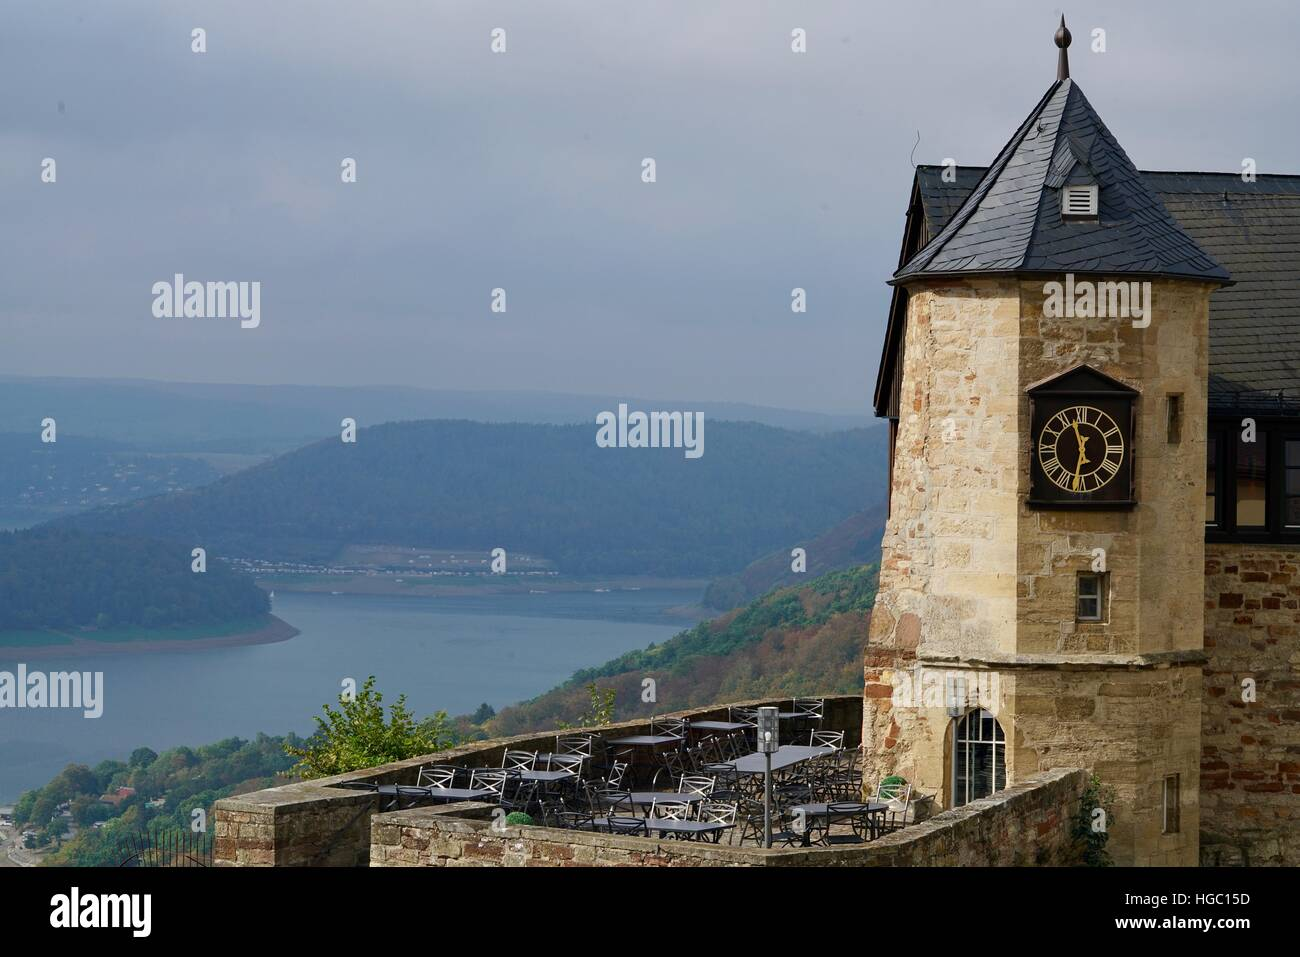 Edersee at the castle of Waldeck, Germany - Stock Image